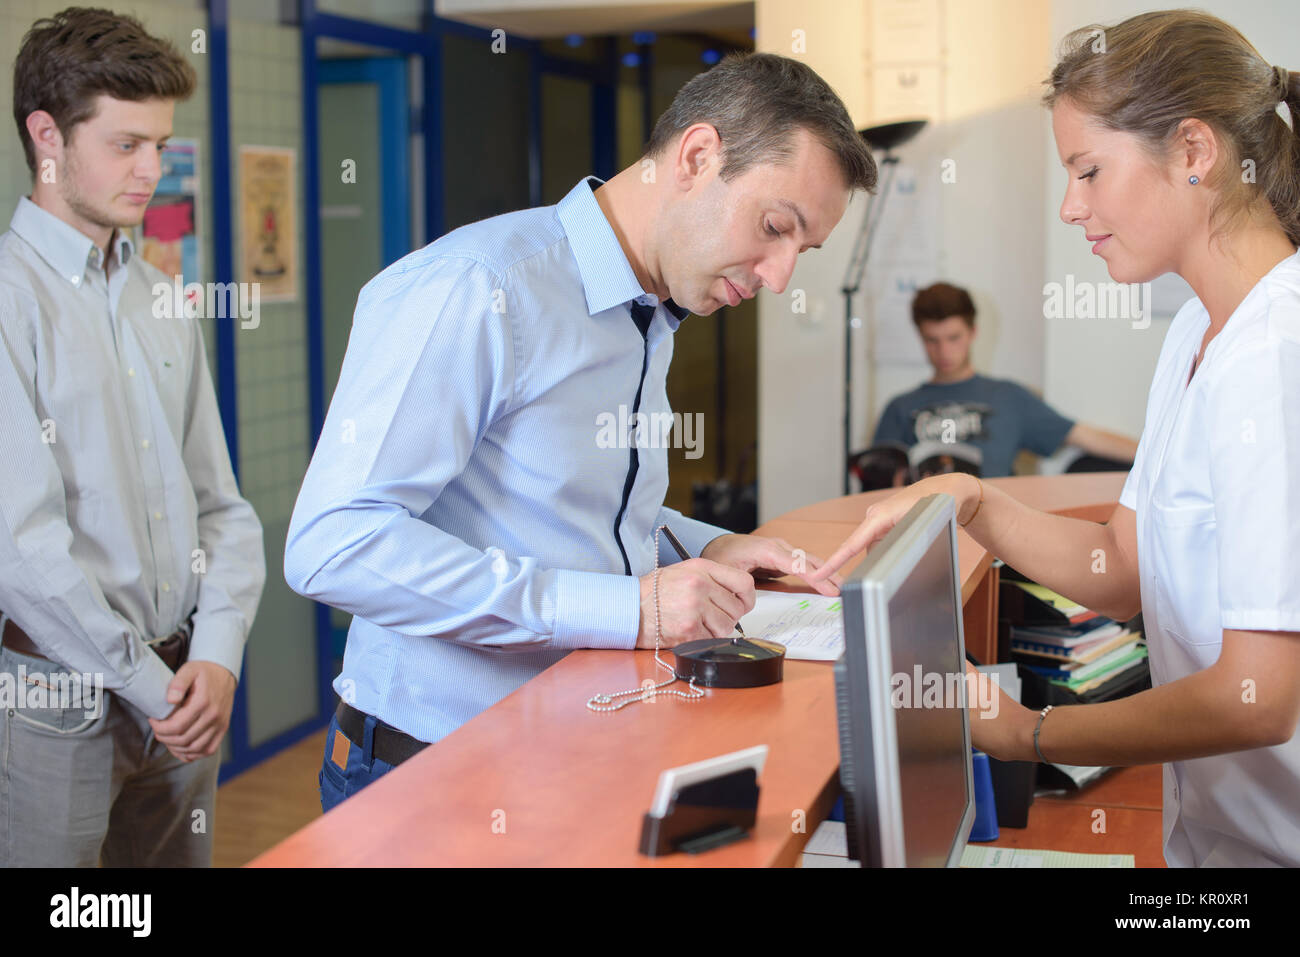 filling up forms - Stock Image